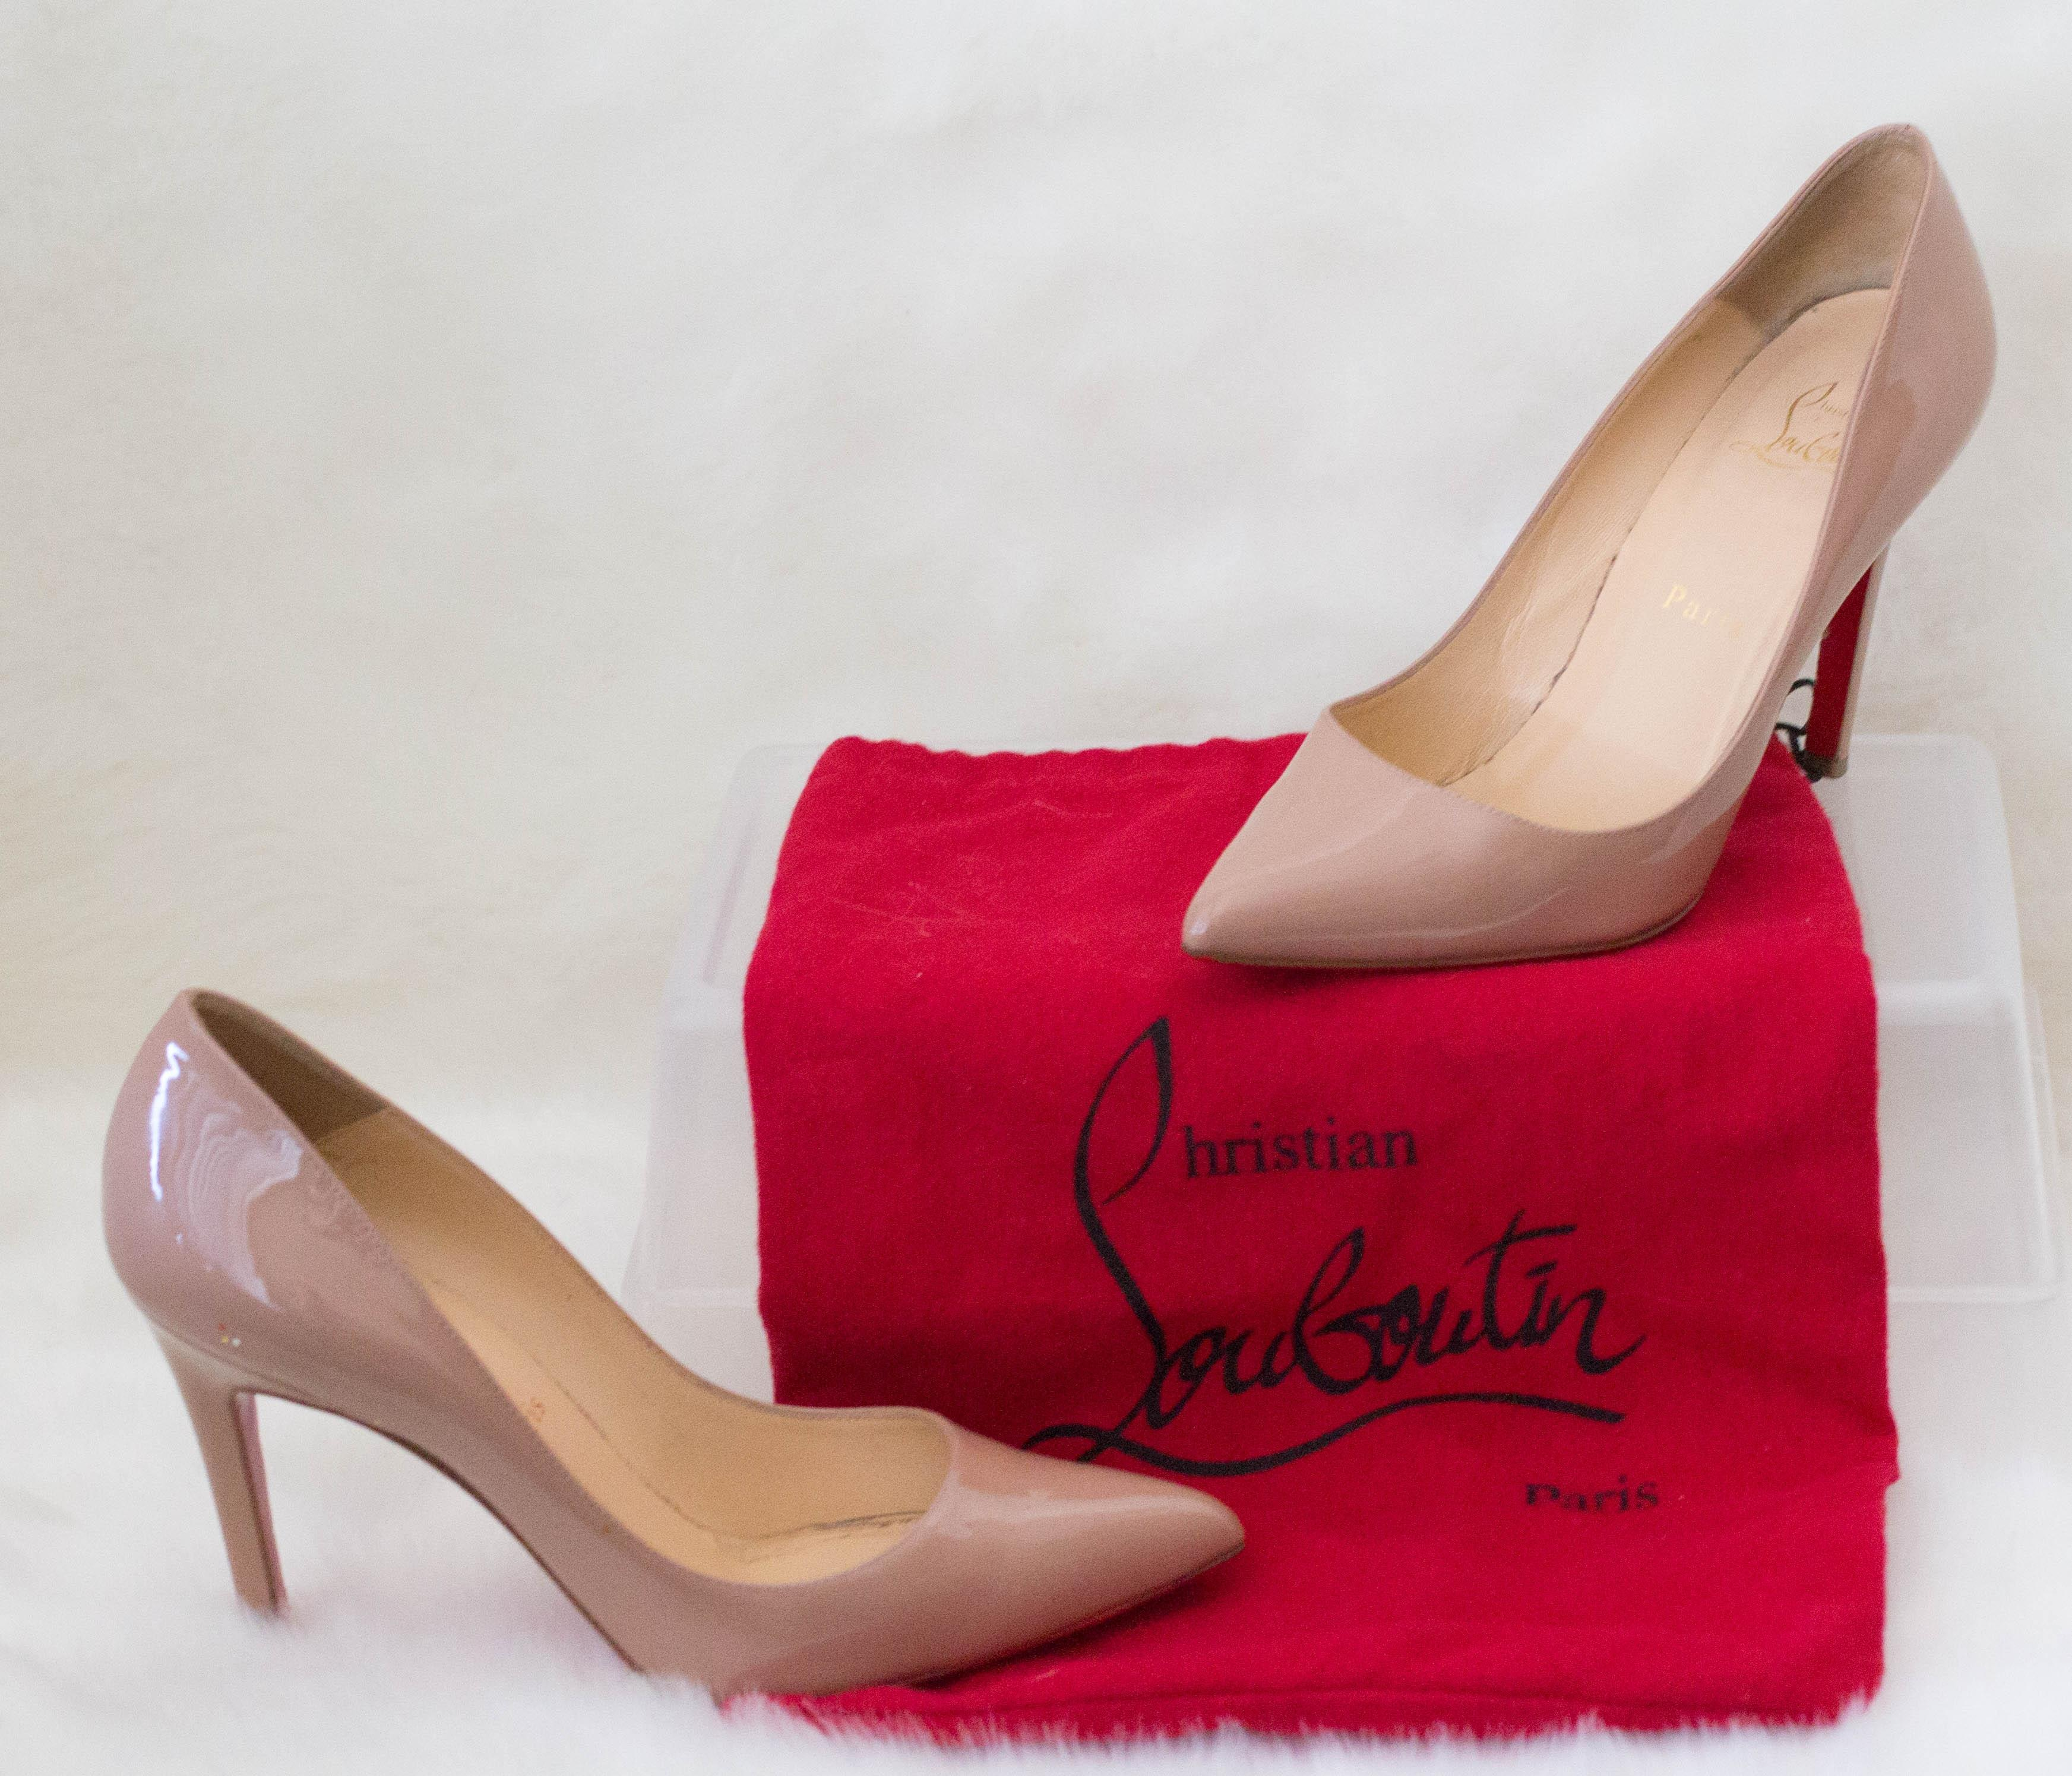 c22ec9e2a0 Christian Louboutin Beige Pigalle Pigalle Pigalle 100 Patent Leather Pumps  Size EU 37 (Approx.